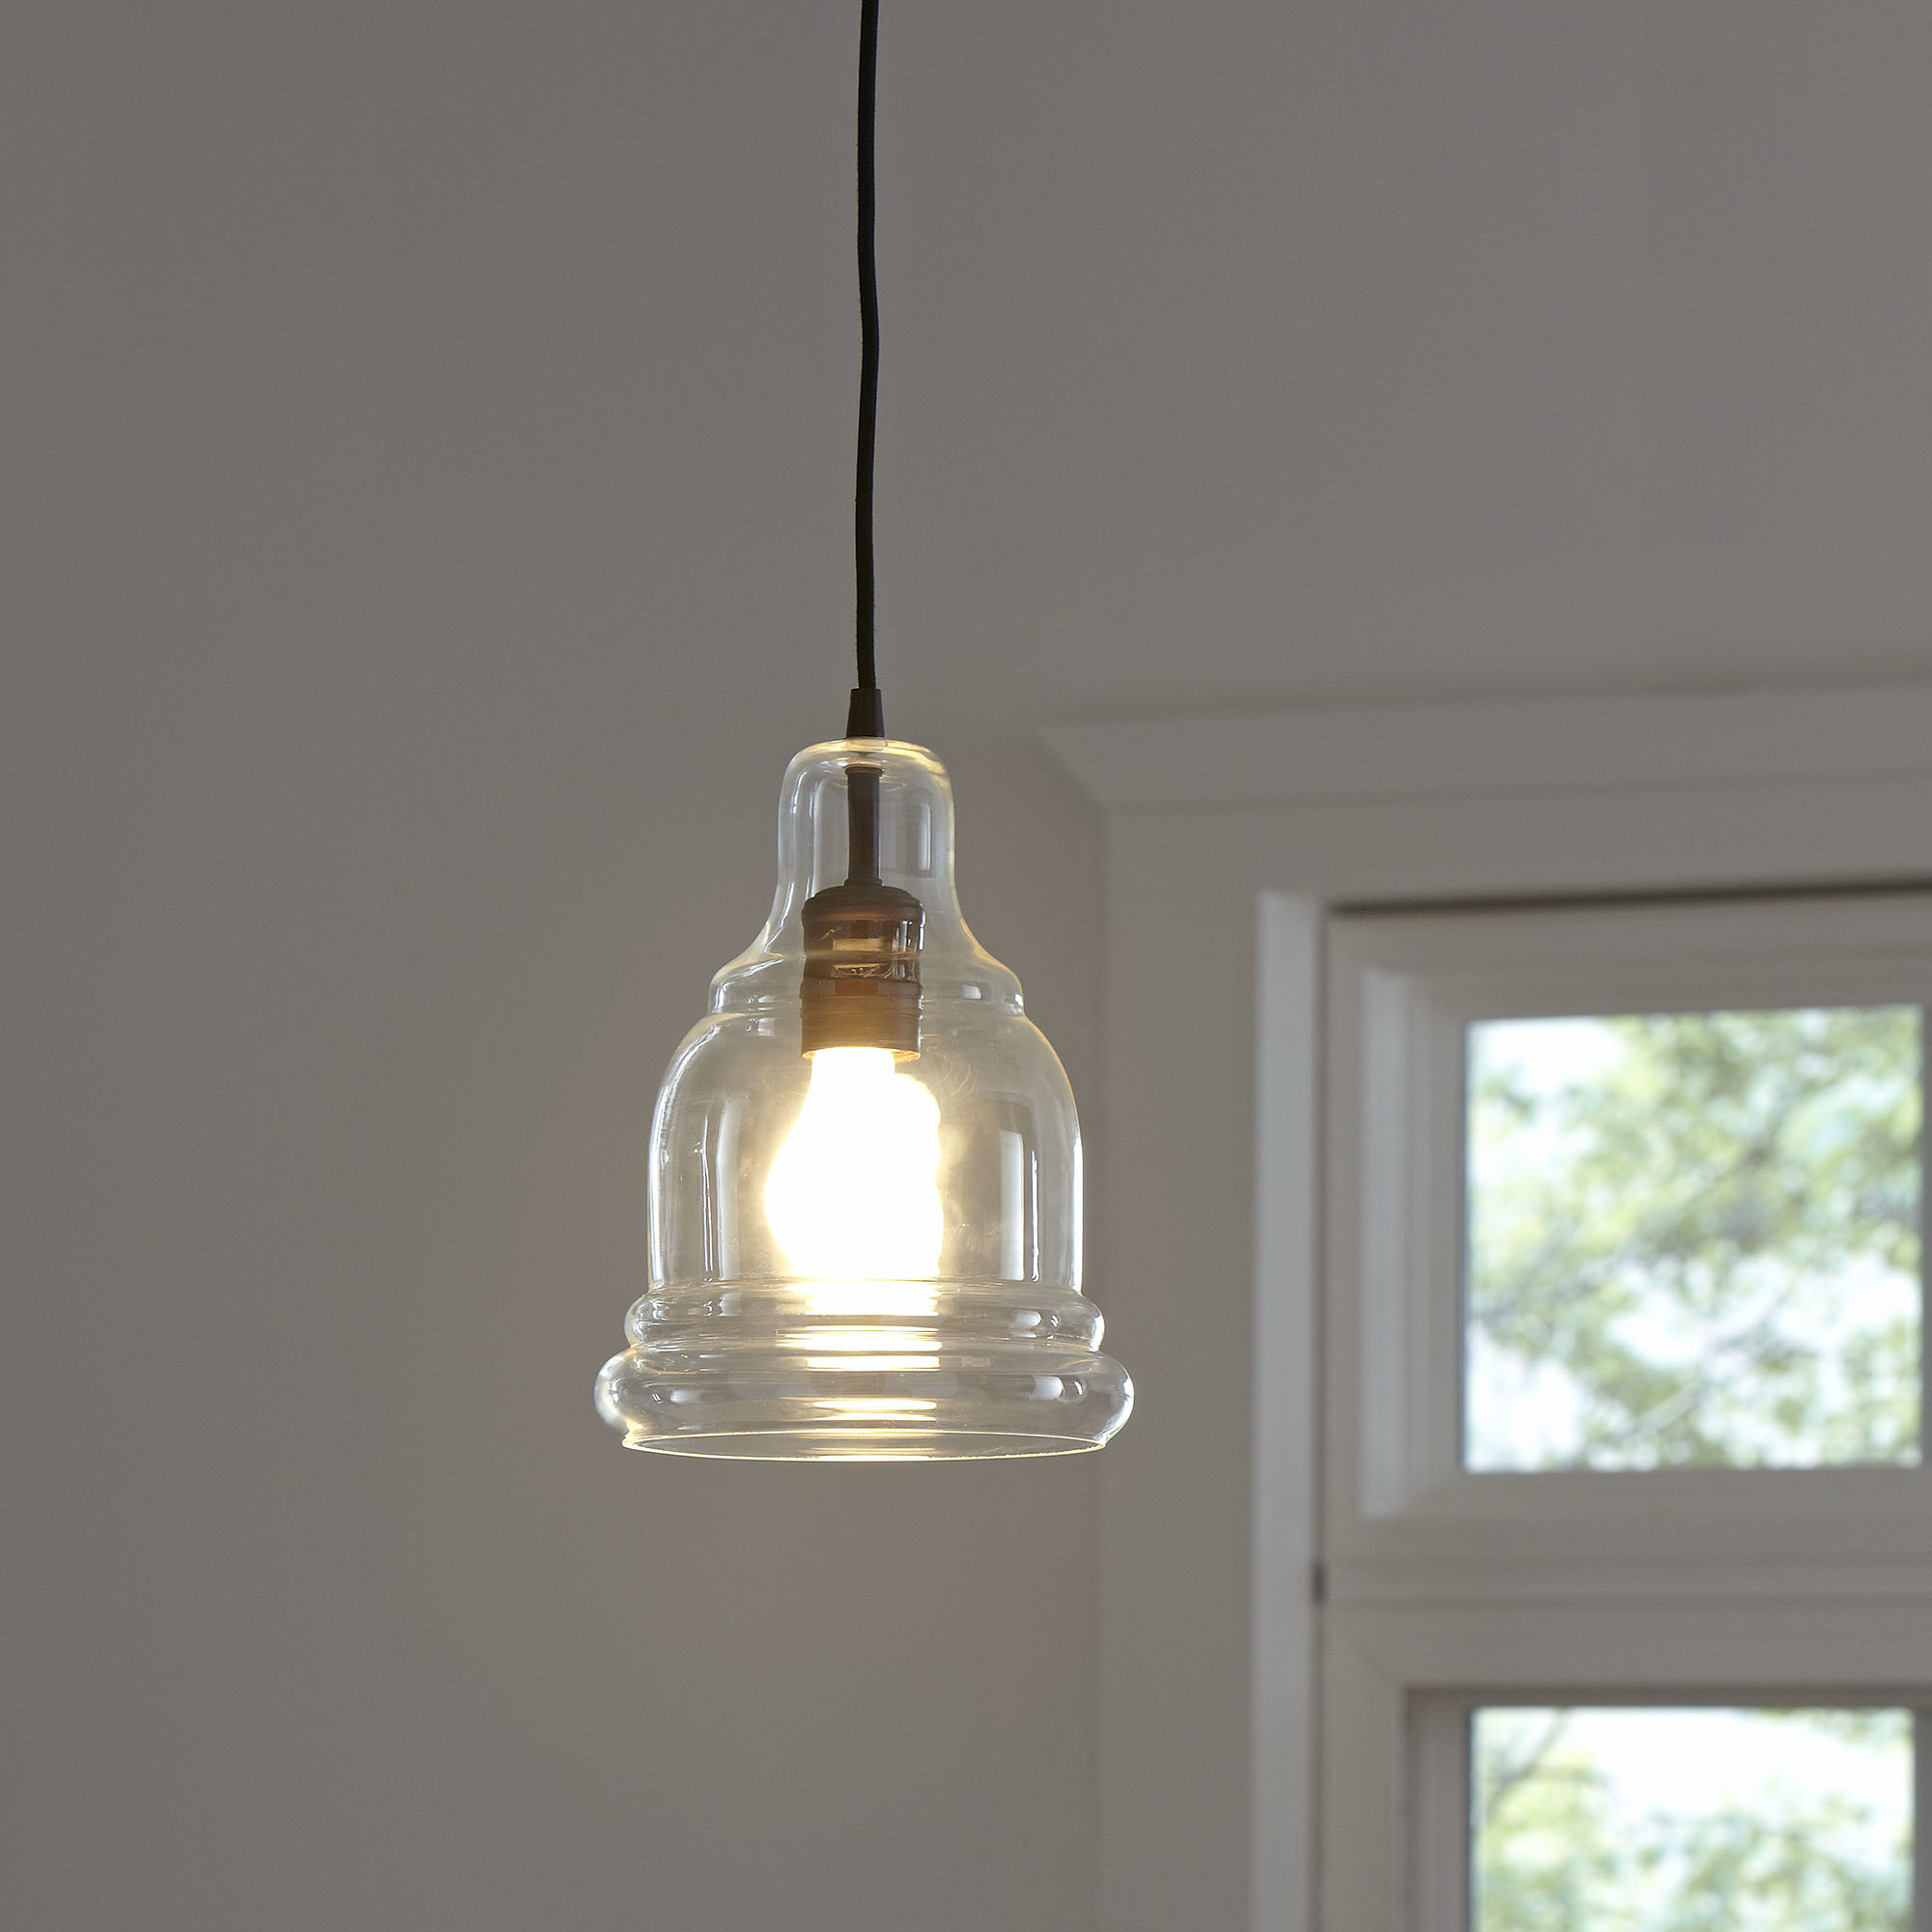 Vintage Edison 1-Light Bowl Pendants in Well-known Rafaello Edison 1-Light Bell Pendant